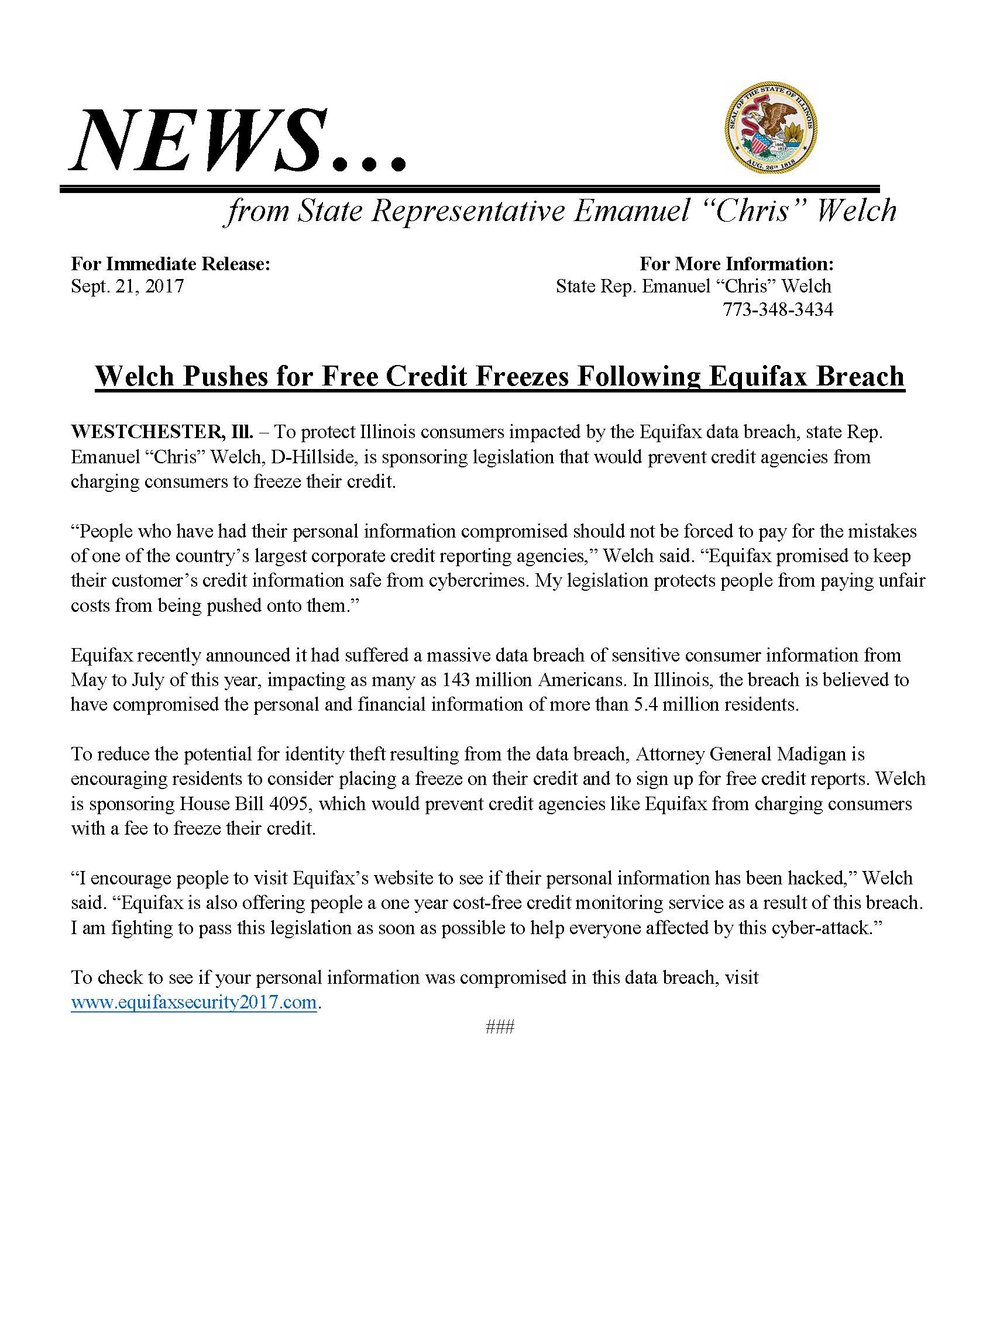 Welch Pushes for Free Credit Freezes Following Equifax Breach  (September 1, 2017)